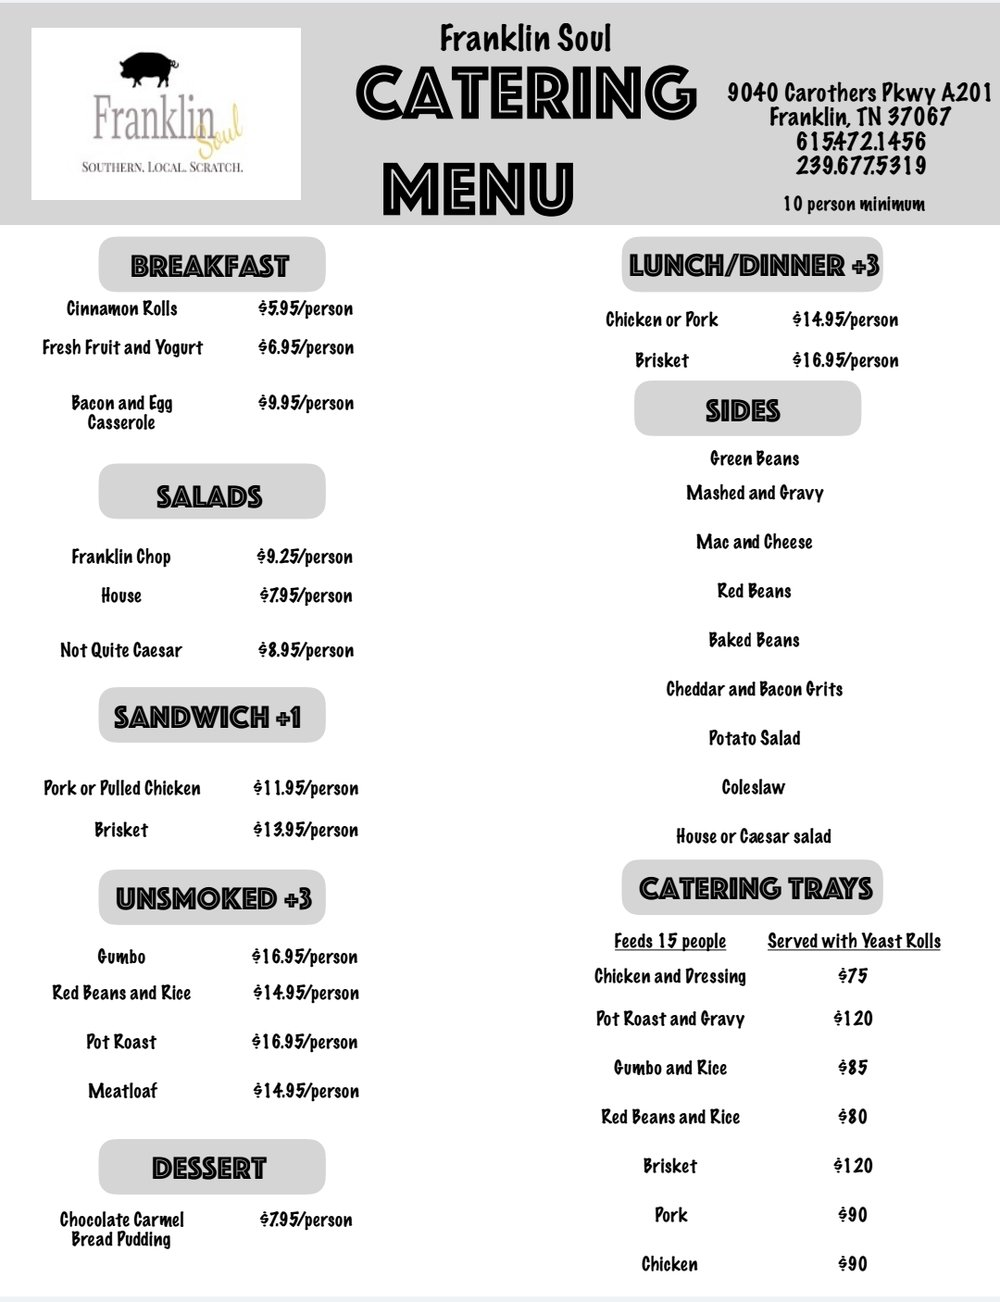 catering menu pic .jpg